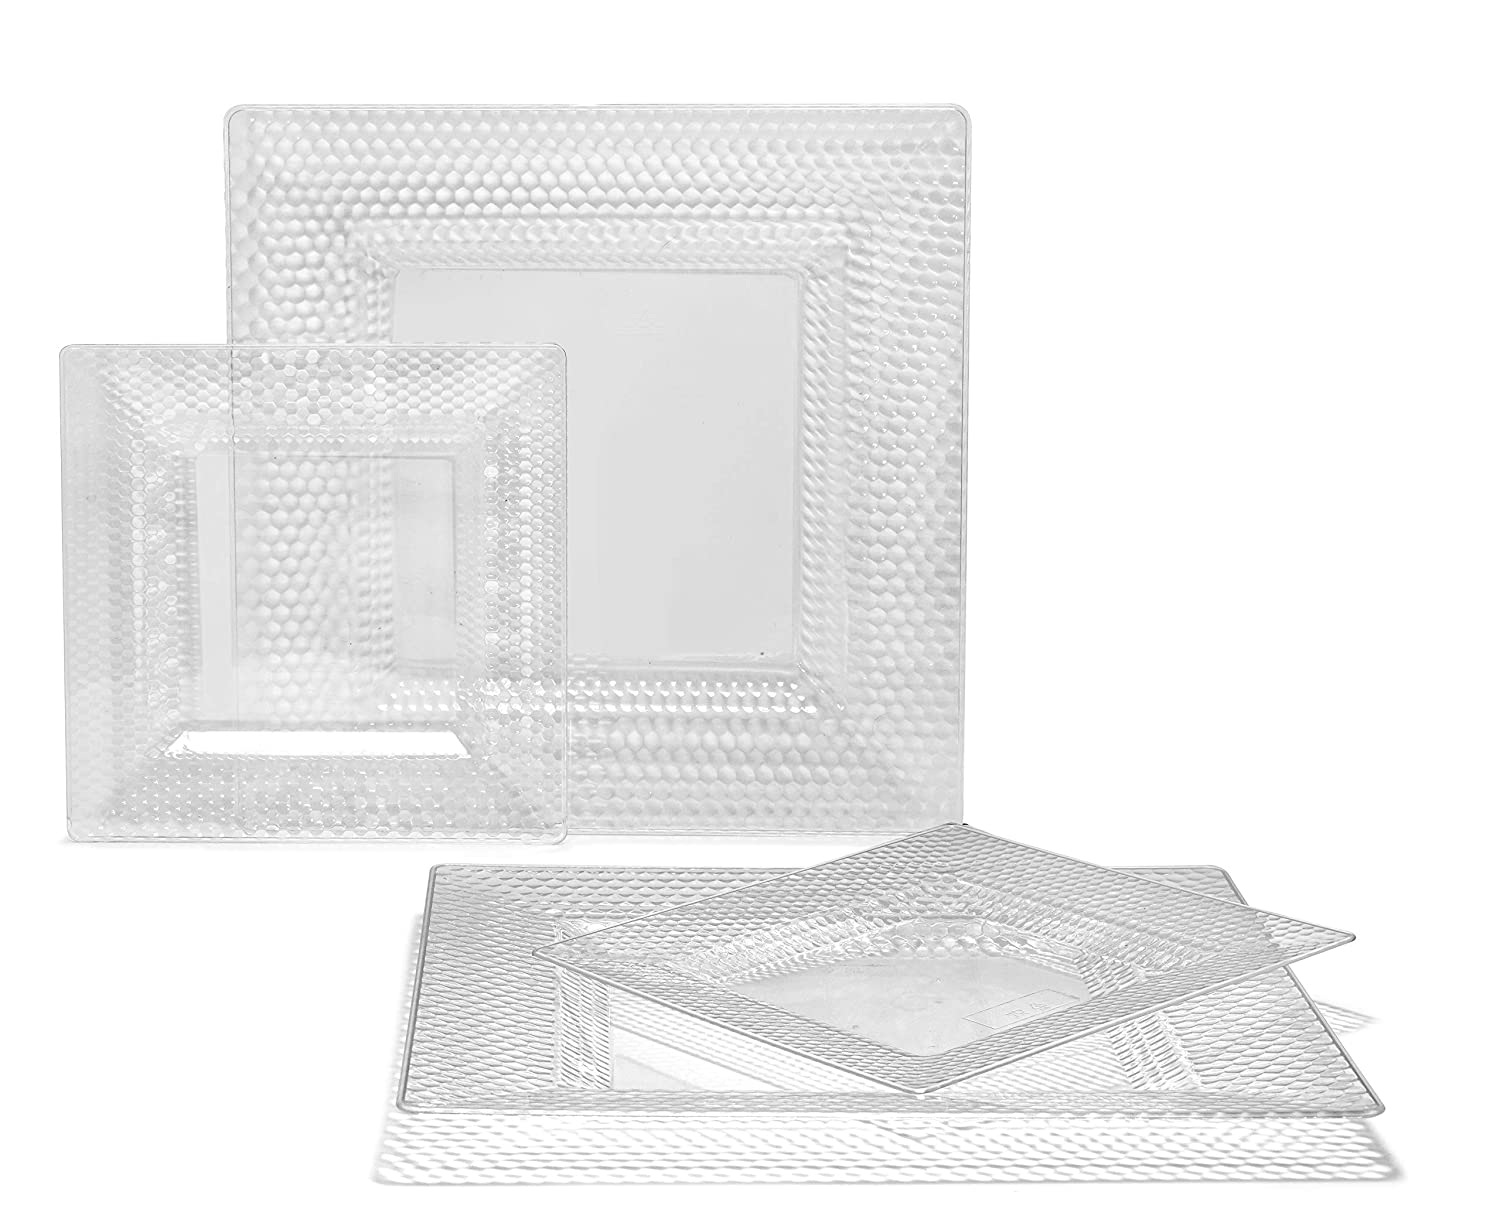 B. Vitro in Clear 50 Piece (25 Guest) OCCASIONS 720 PCS   120 GUEST Wedding Disposable Plastic Plate and Silverware Combo Set (Diamond White Silver Plates, Silver Silverware)